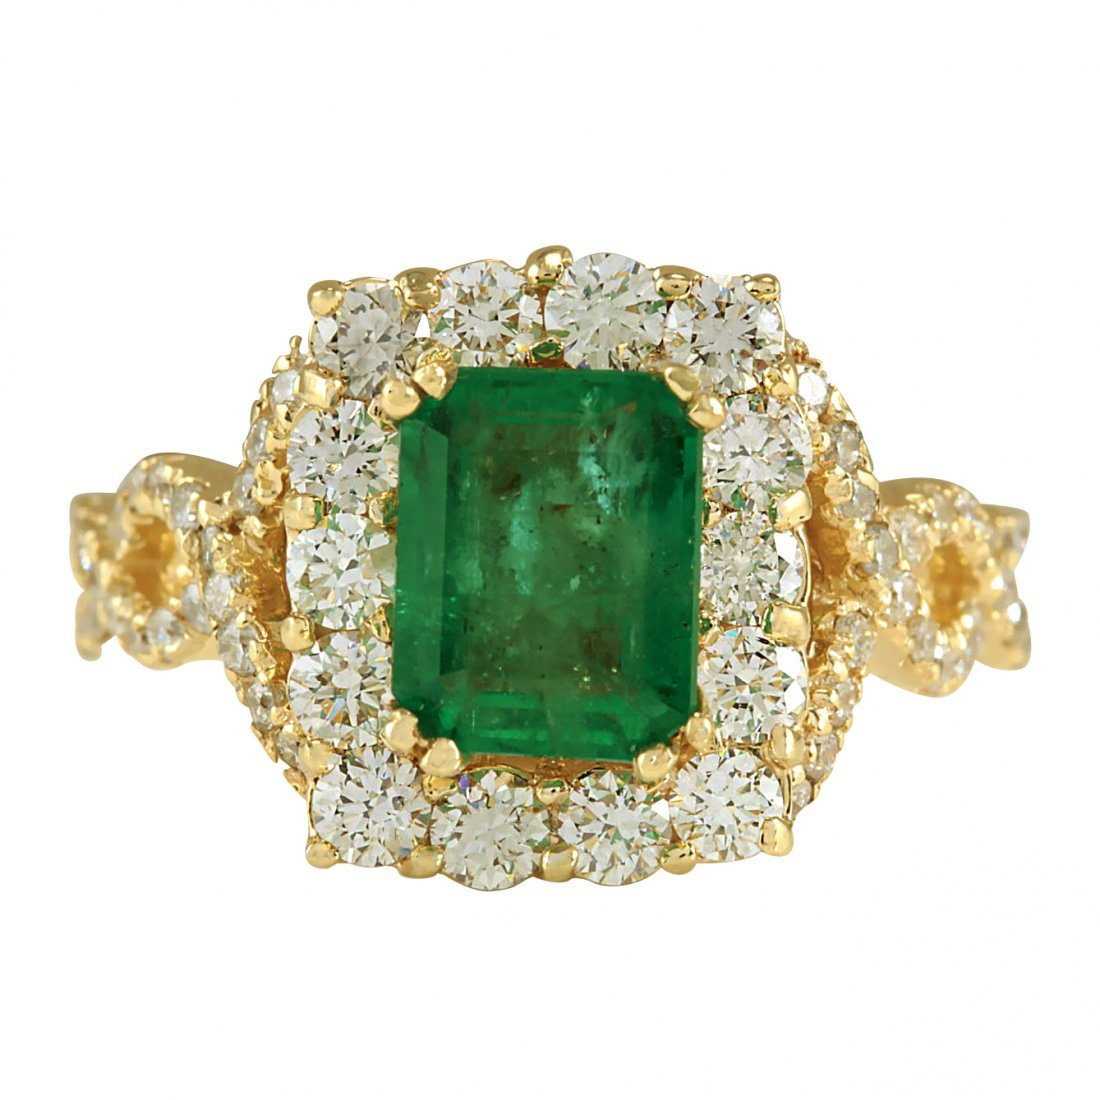 3.18CTW Natural Emerald And Diamond Ring In 14K Yellow